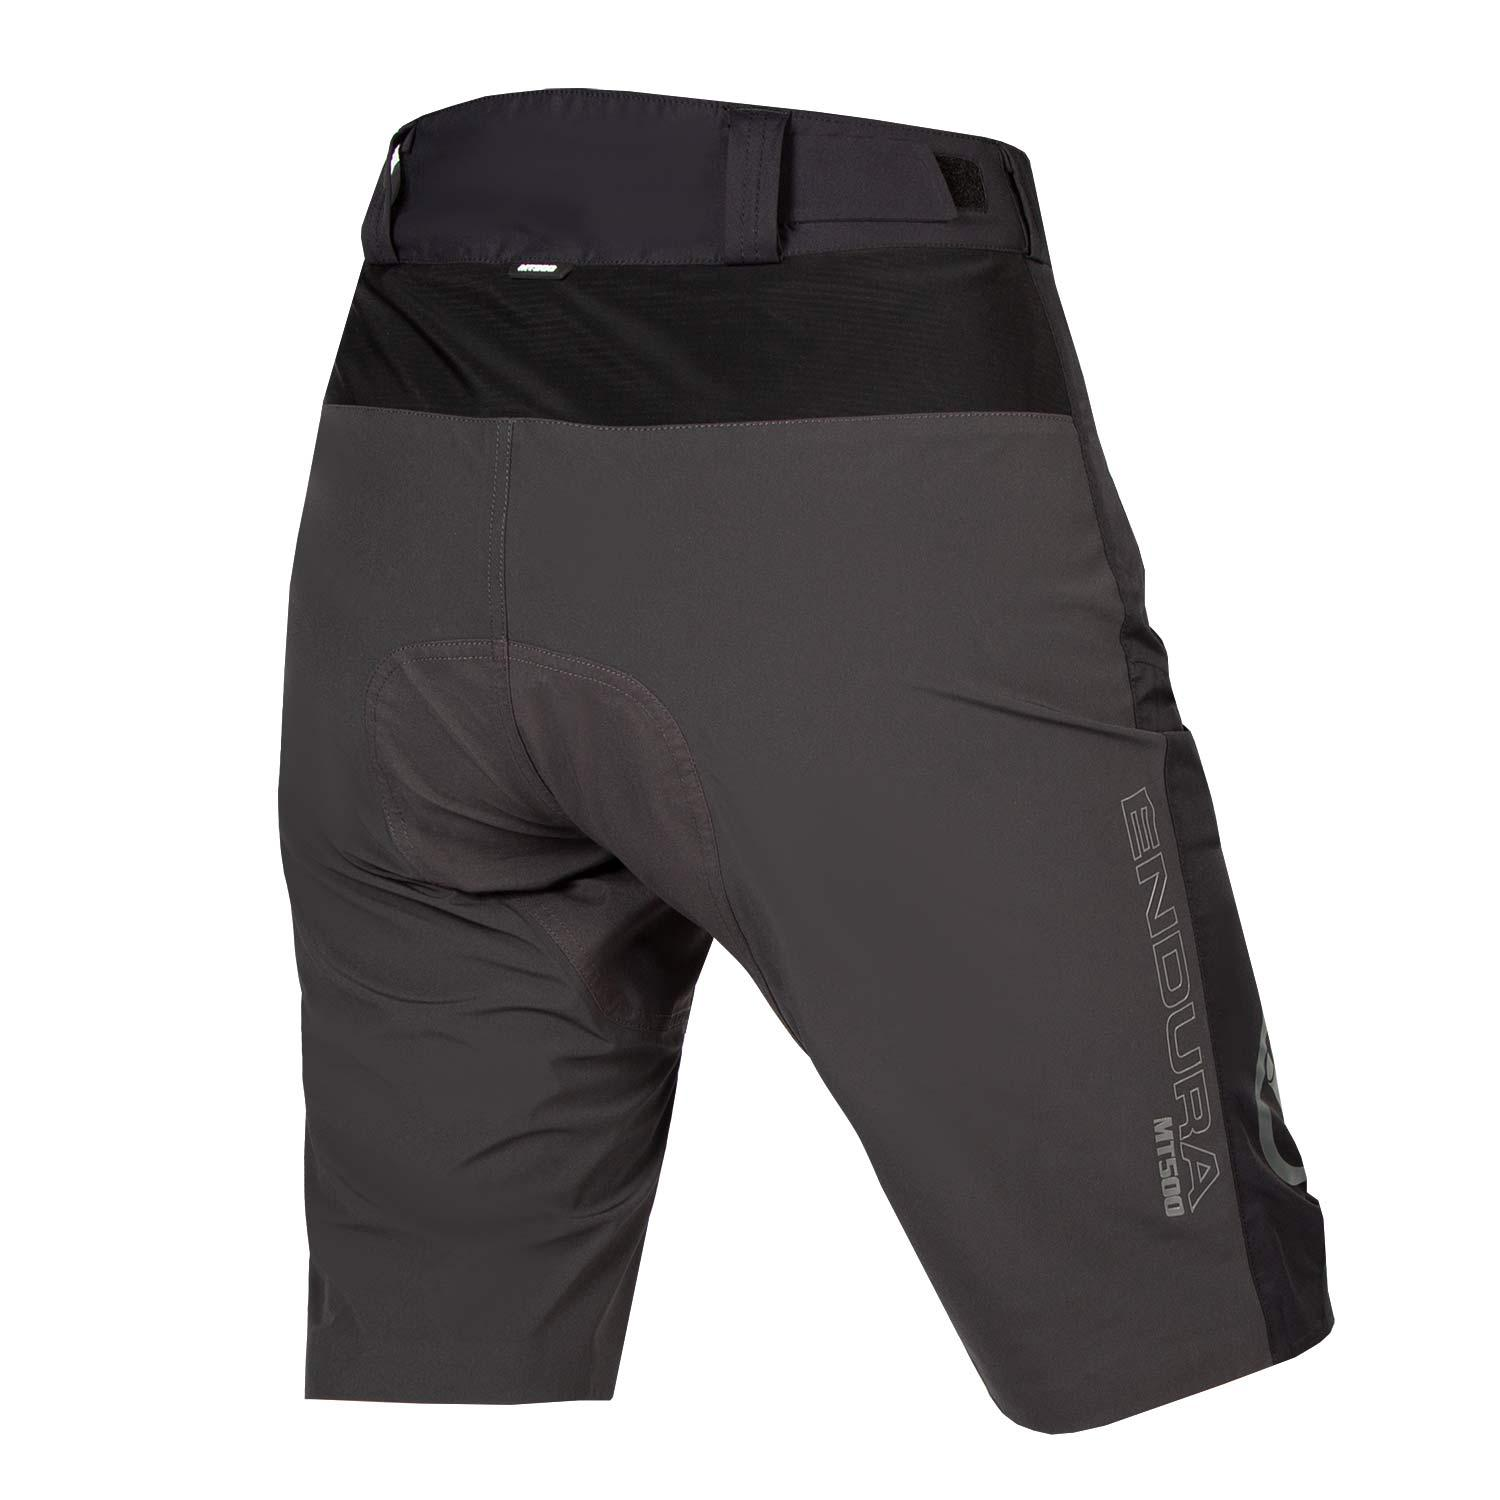 Endura MTB fietsbroek kort waterafstotend Dames Zwart - Women's MT500 Spray Short II Zwart